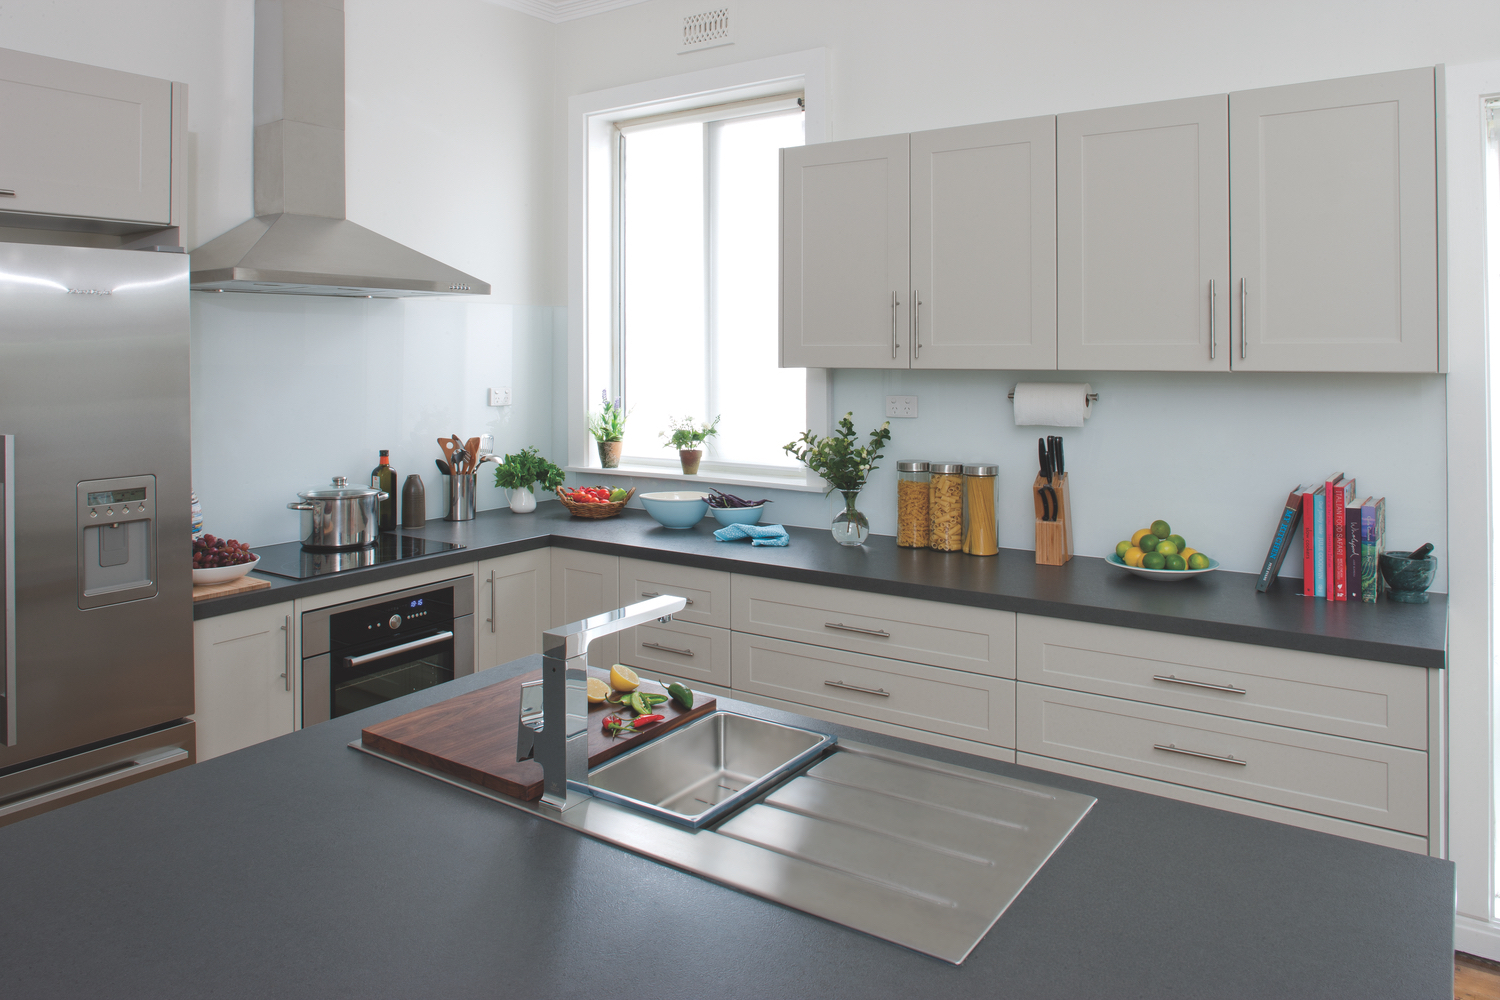 High Profile - kitchen ideas and inspiration | kaboodle ...